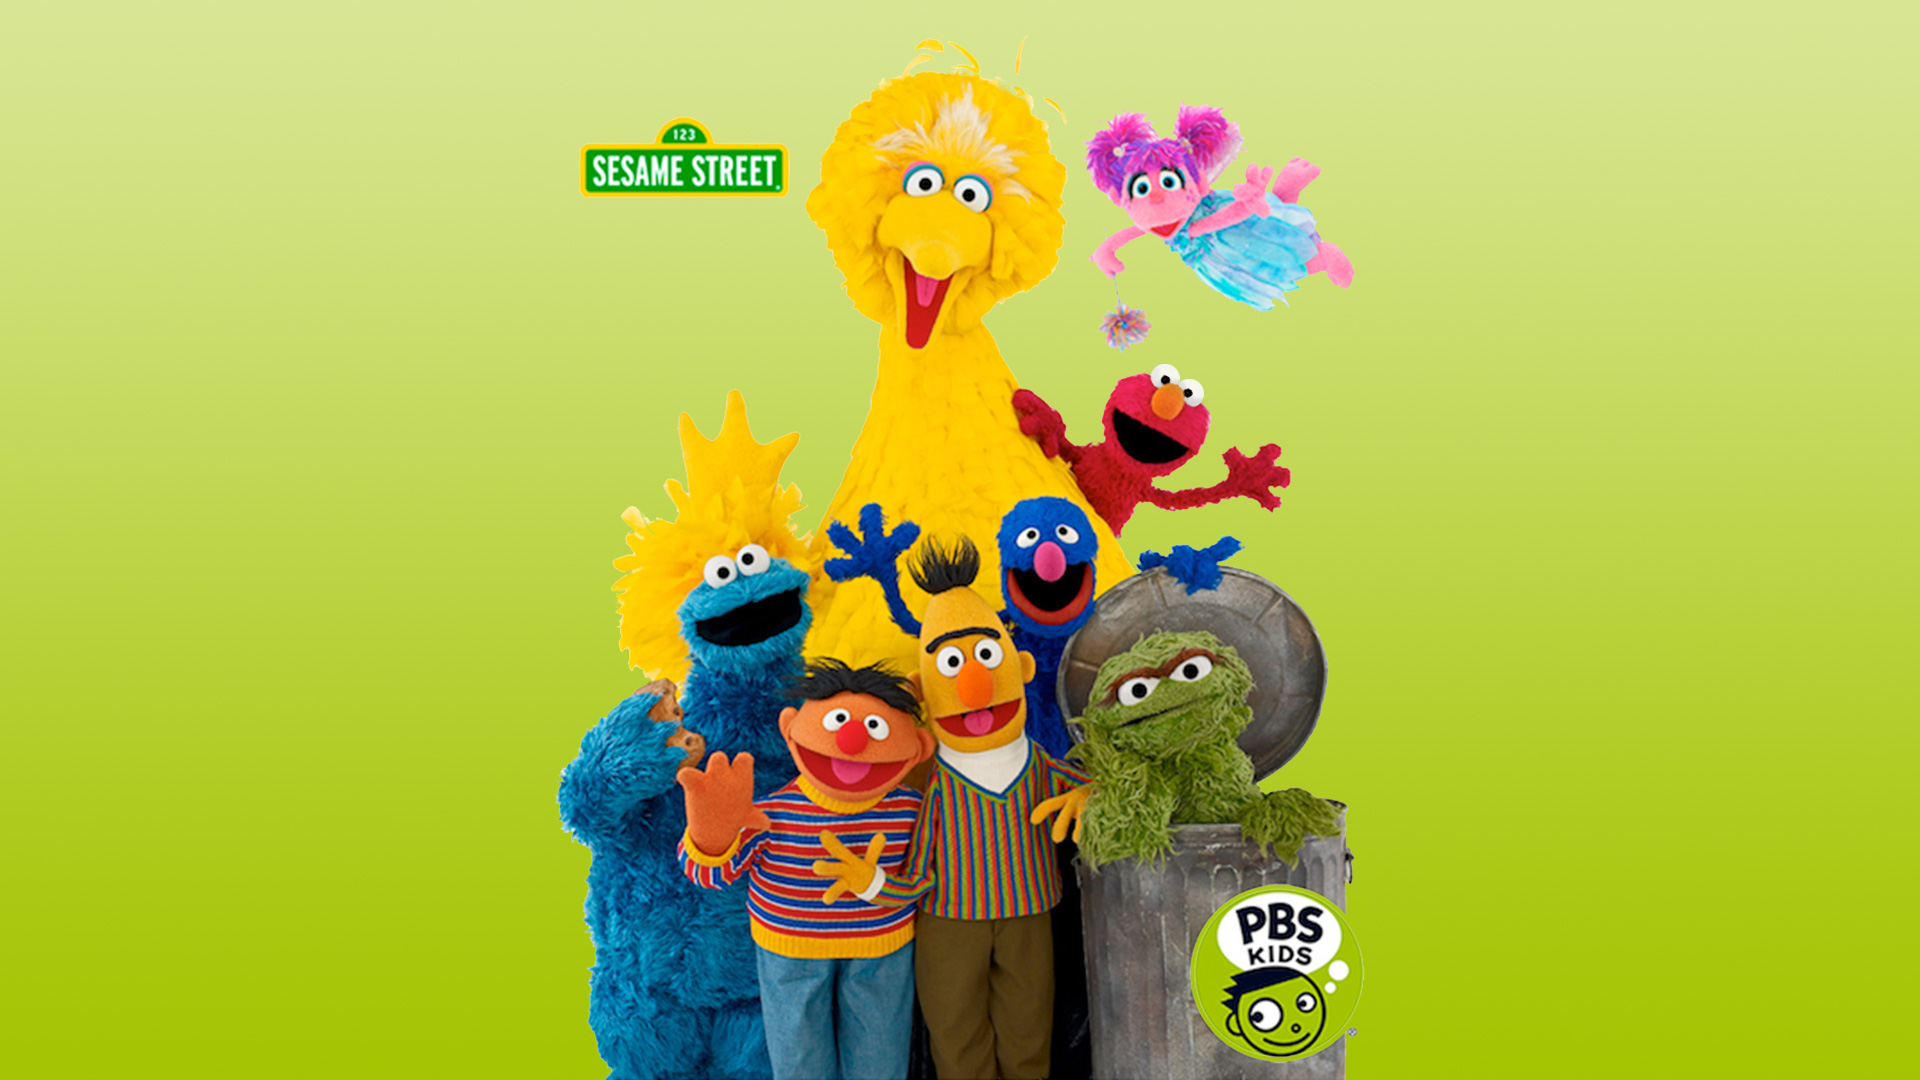 Sesame Street group PBS Kids hero